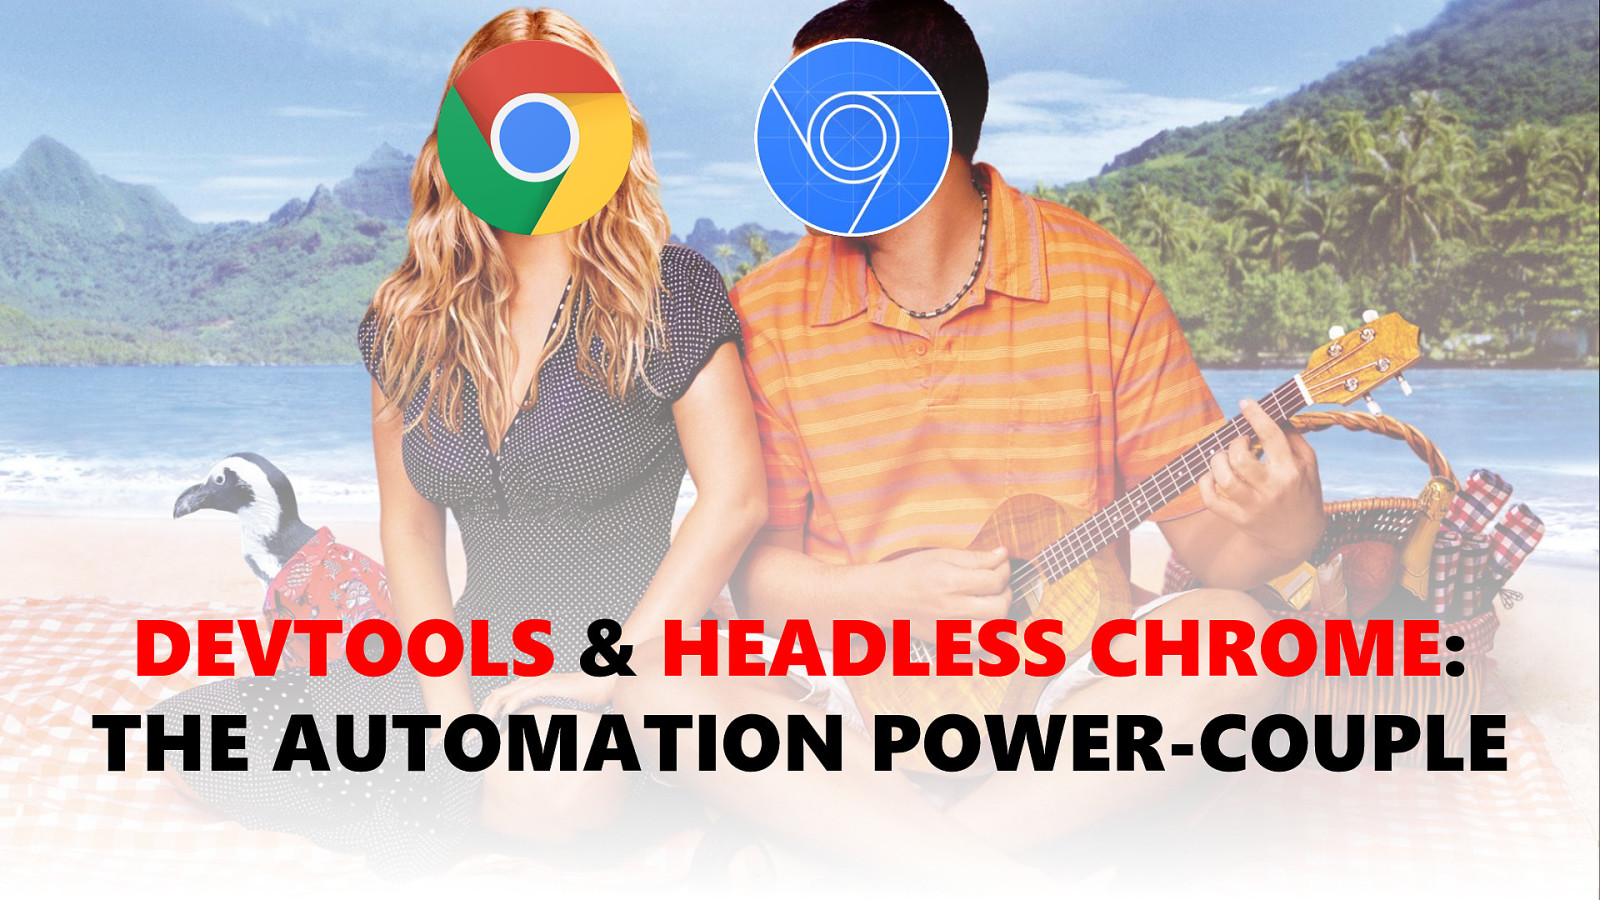 DevTools and Headless Chrome - The Automation Power-Couple